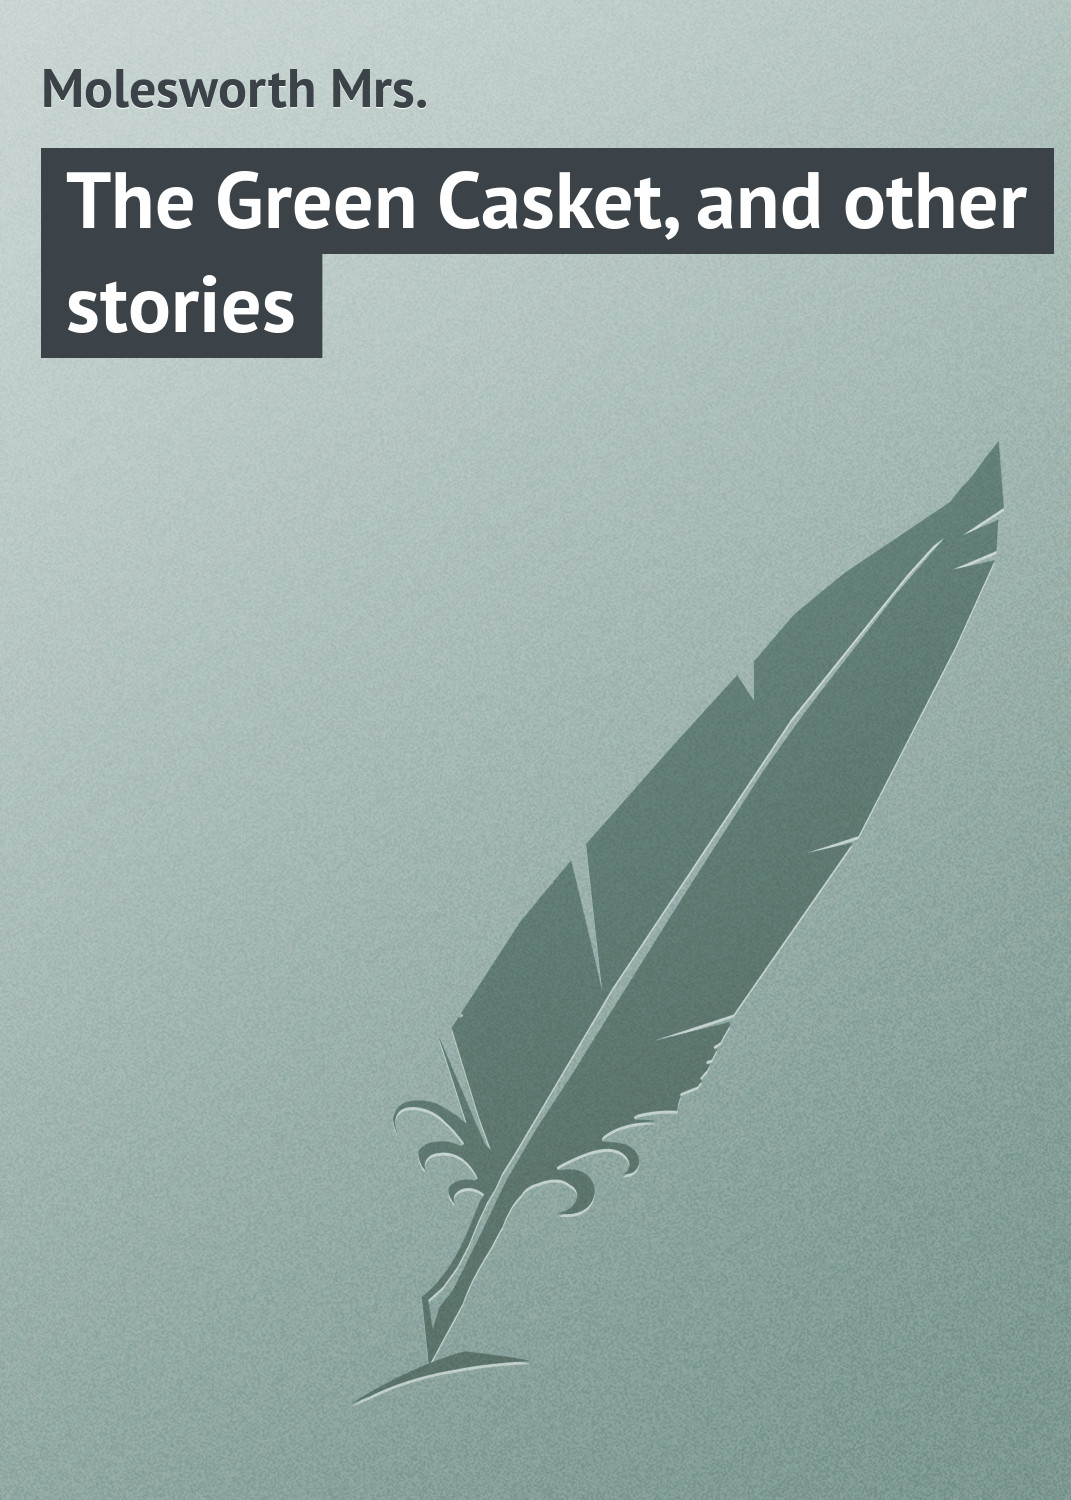 купить Molesworth Mrs. The Green Casket, and other stories по цене 0 рублей